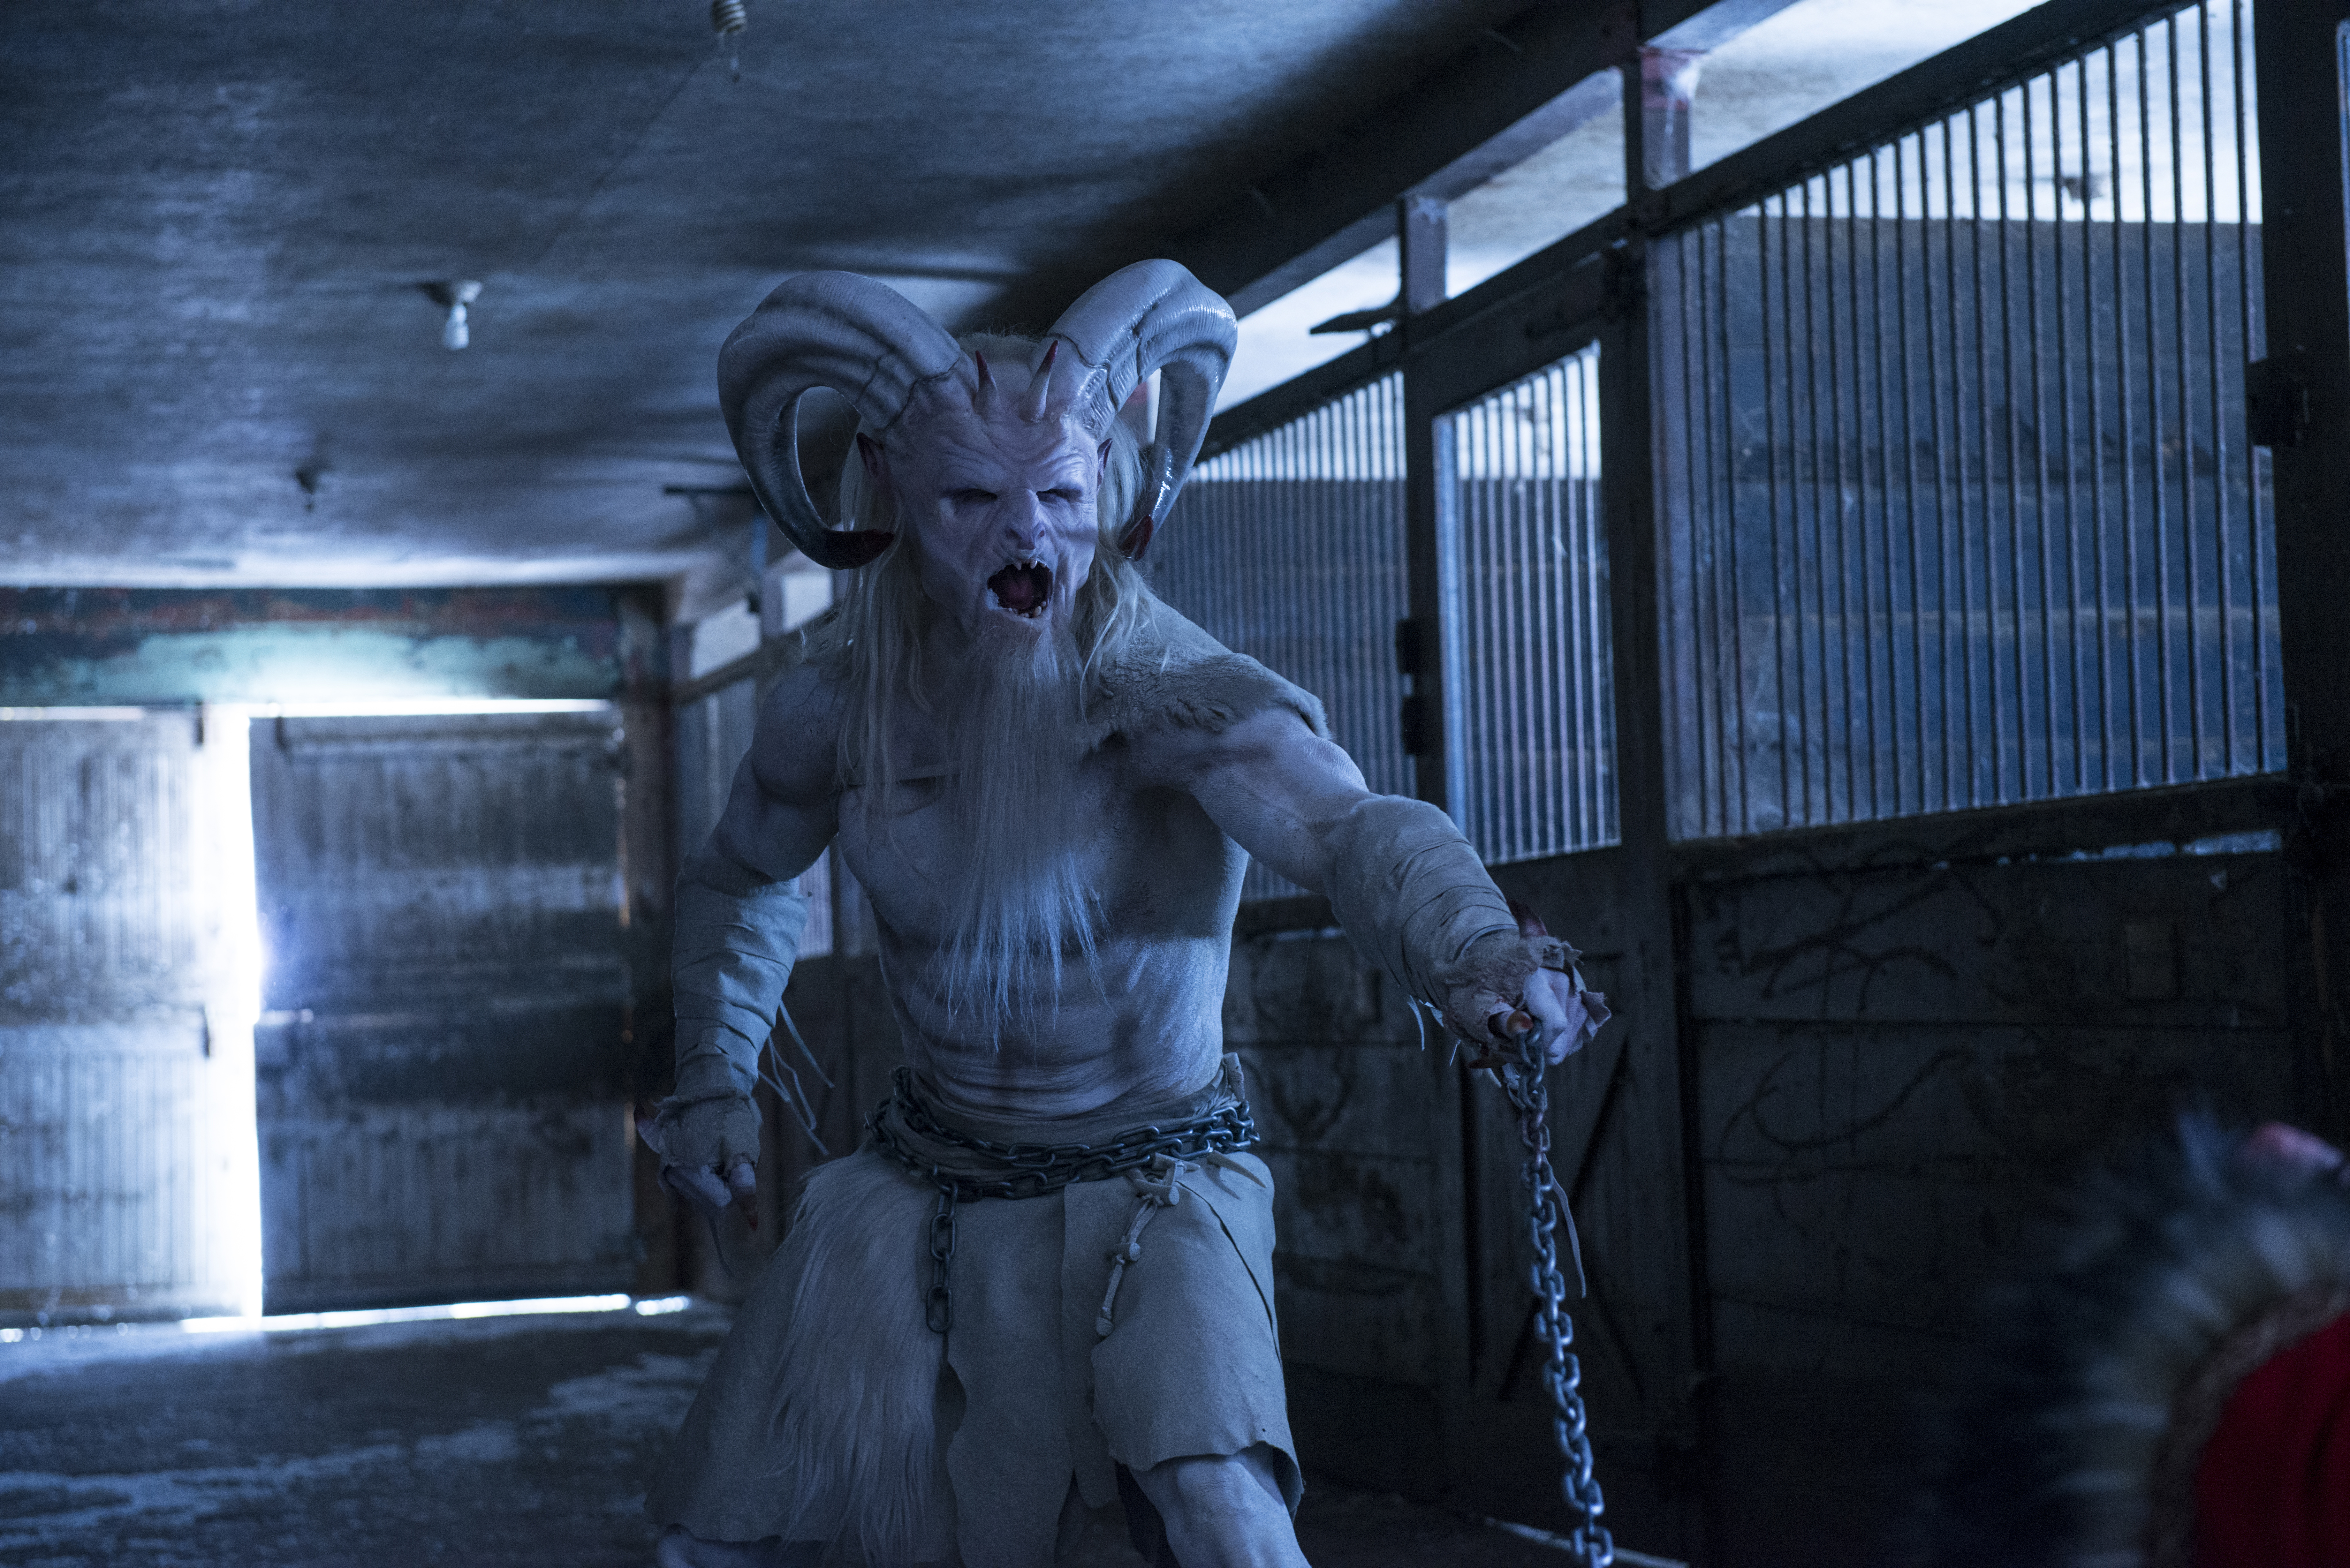 Christmas Horror Story Krampus.A Christmas Horror Story Fetch Publicity